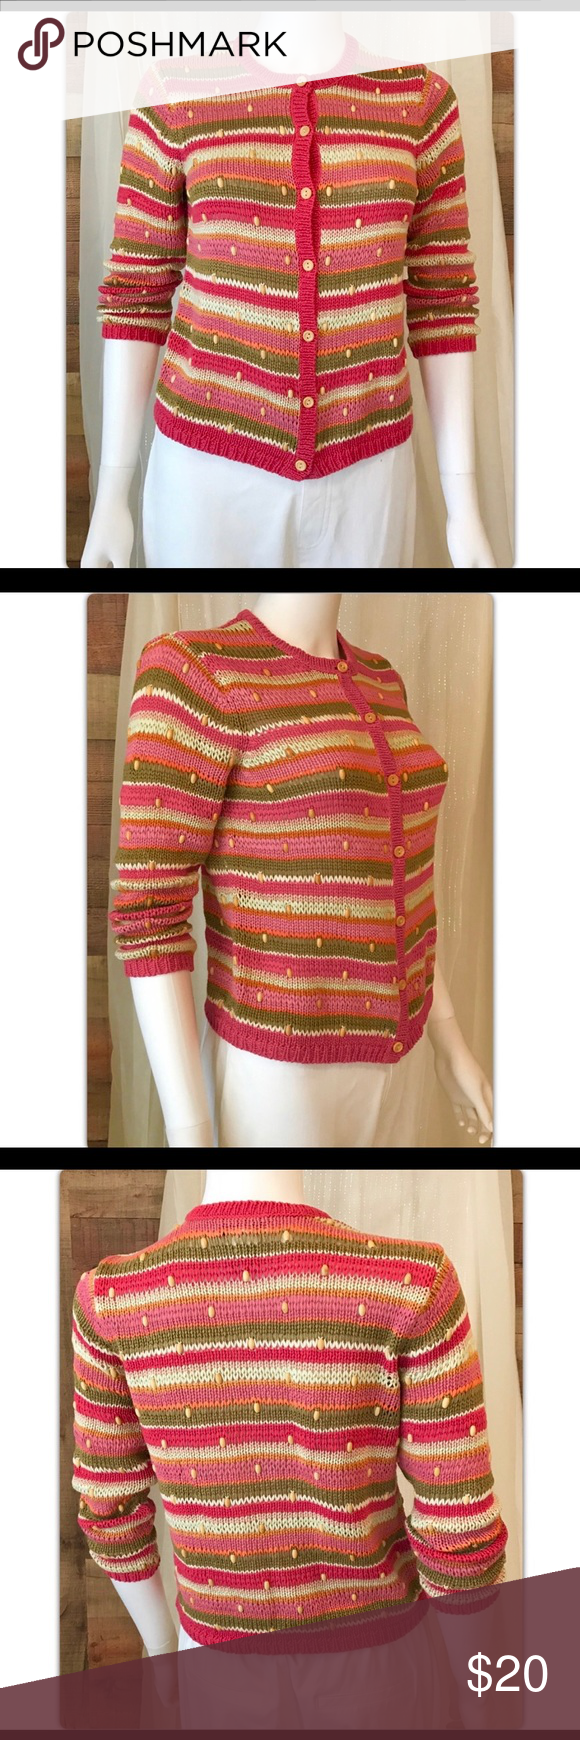 145a6b94863 Talbots Striped with Beads Cardigan Sweater 0P